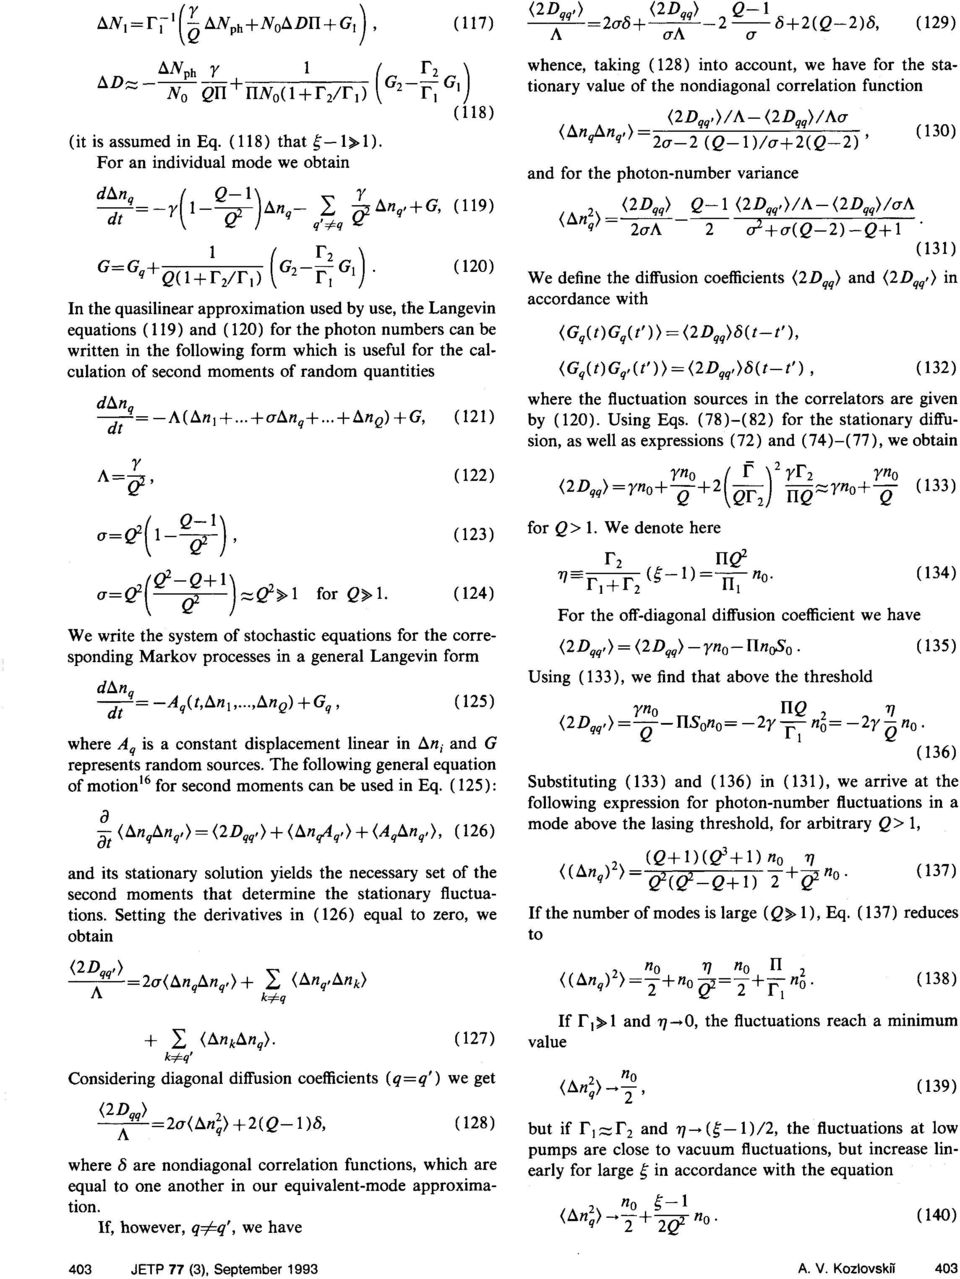 (130) and for the photon-number variance In the quasilinear approximation used by use, the Langevin equations ( 1 19) and ( 120) for the photon numbers can be written in the following form which is